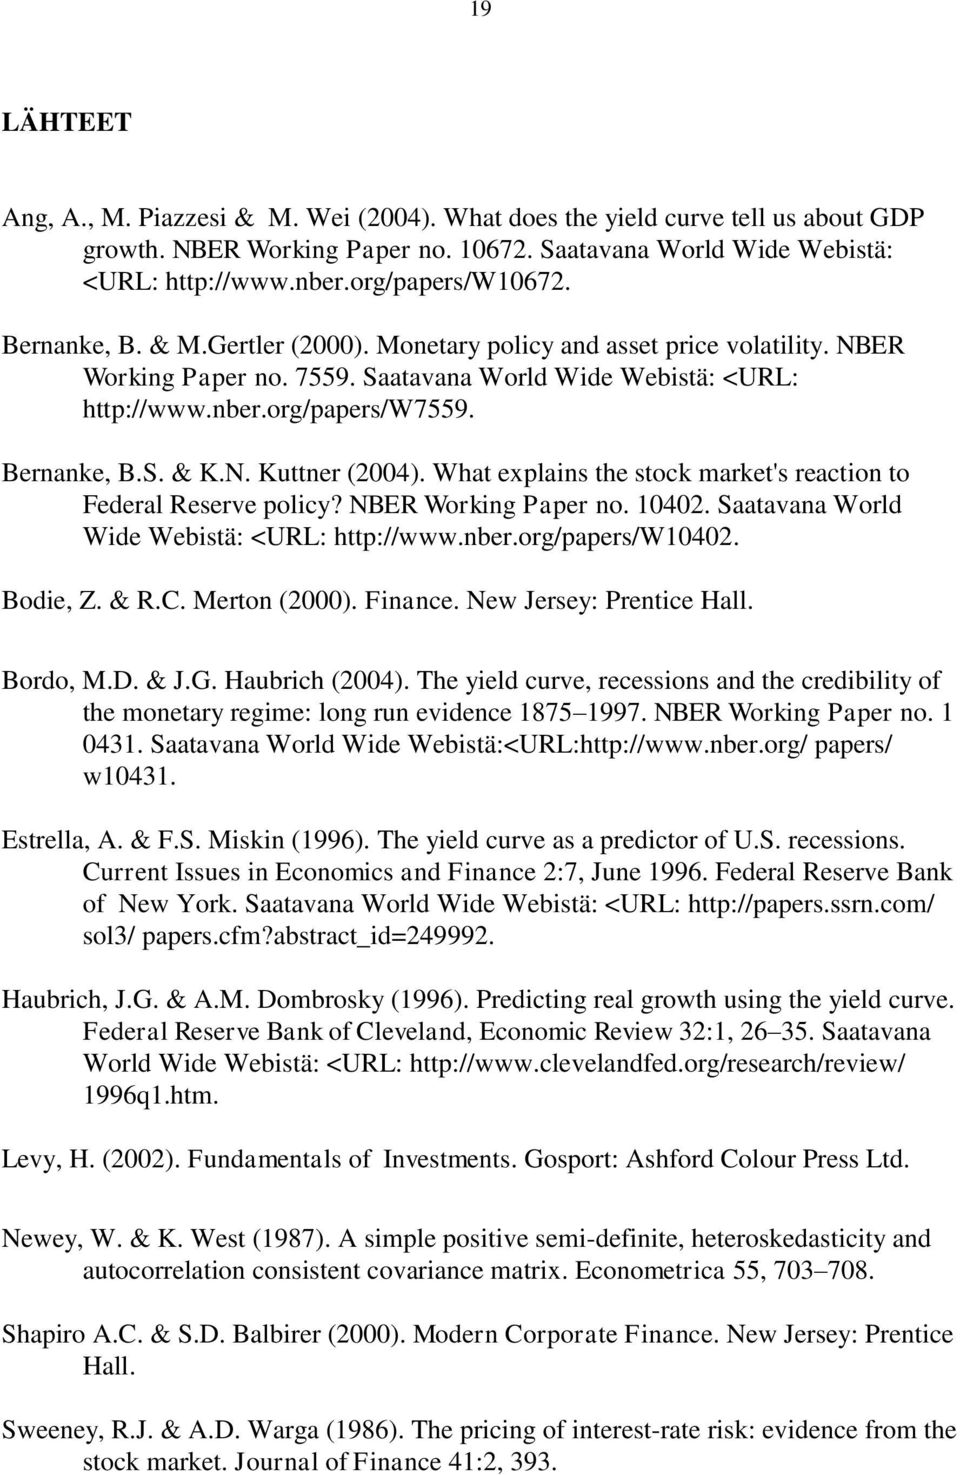 Bernanke, B.S. & K.N. Kuttner (2004). What explains the stock market's reaction to Federal Reserve policy? NBER Working Paper no. 10402. Saatavana World Wide Webistä: <URL: http://www.nber.